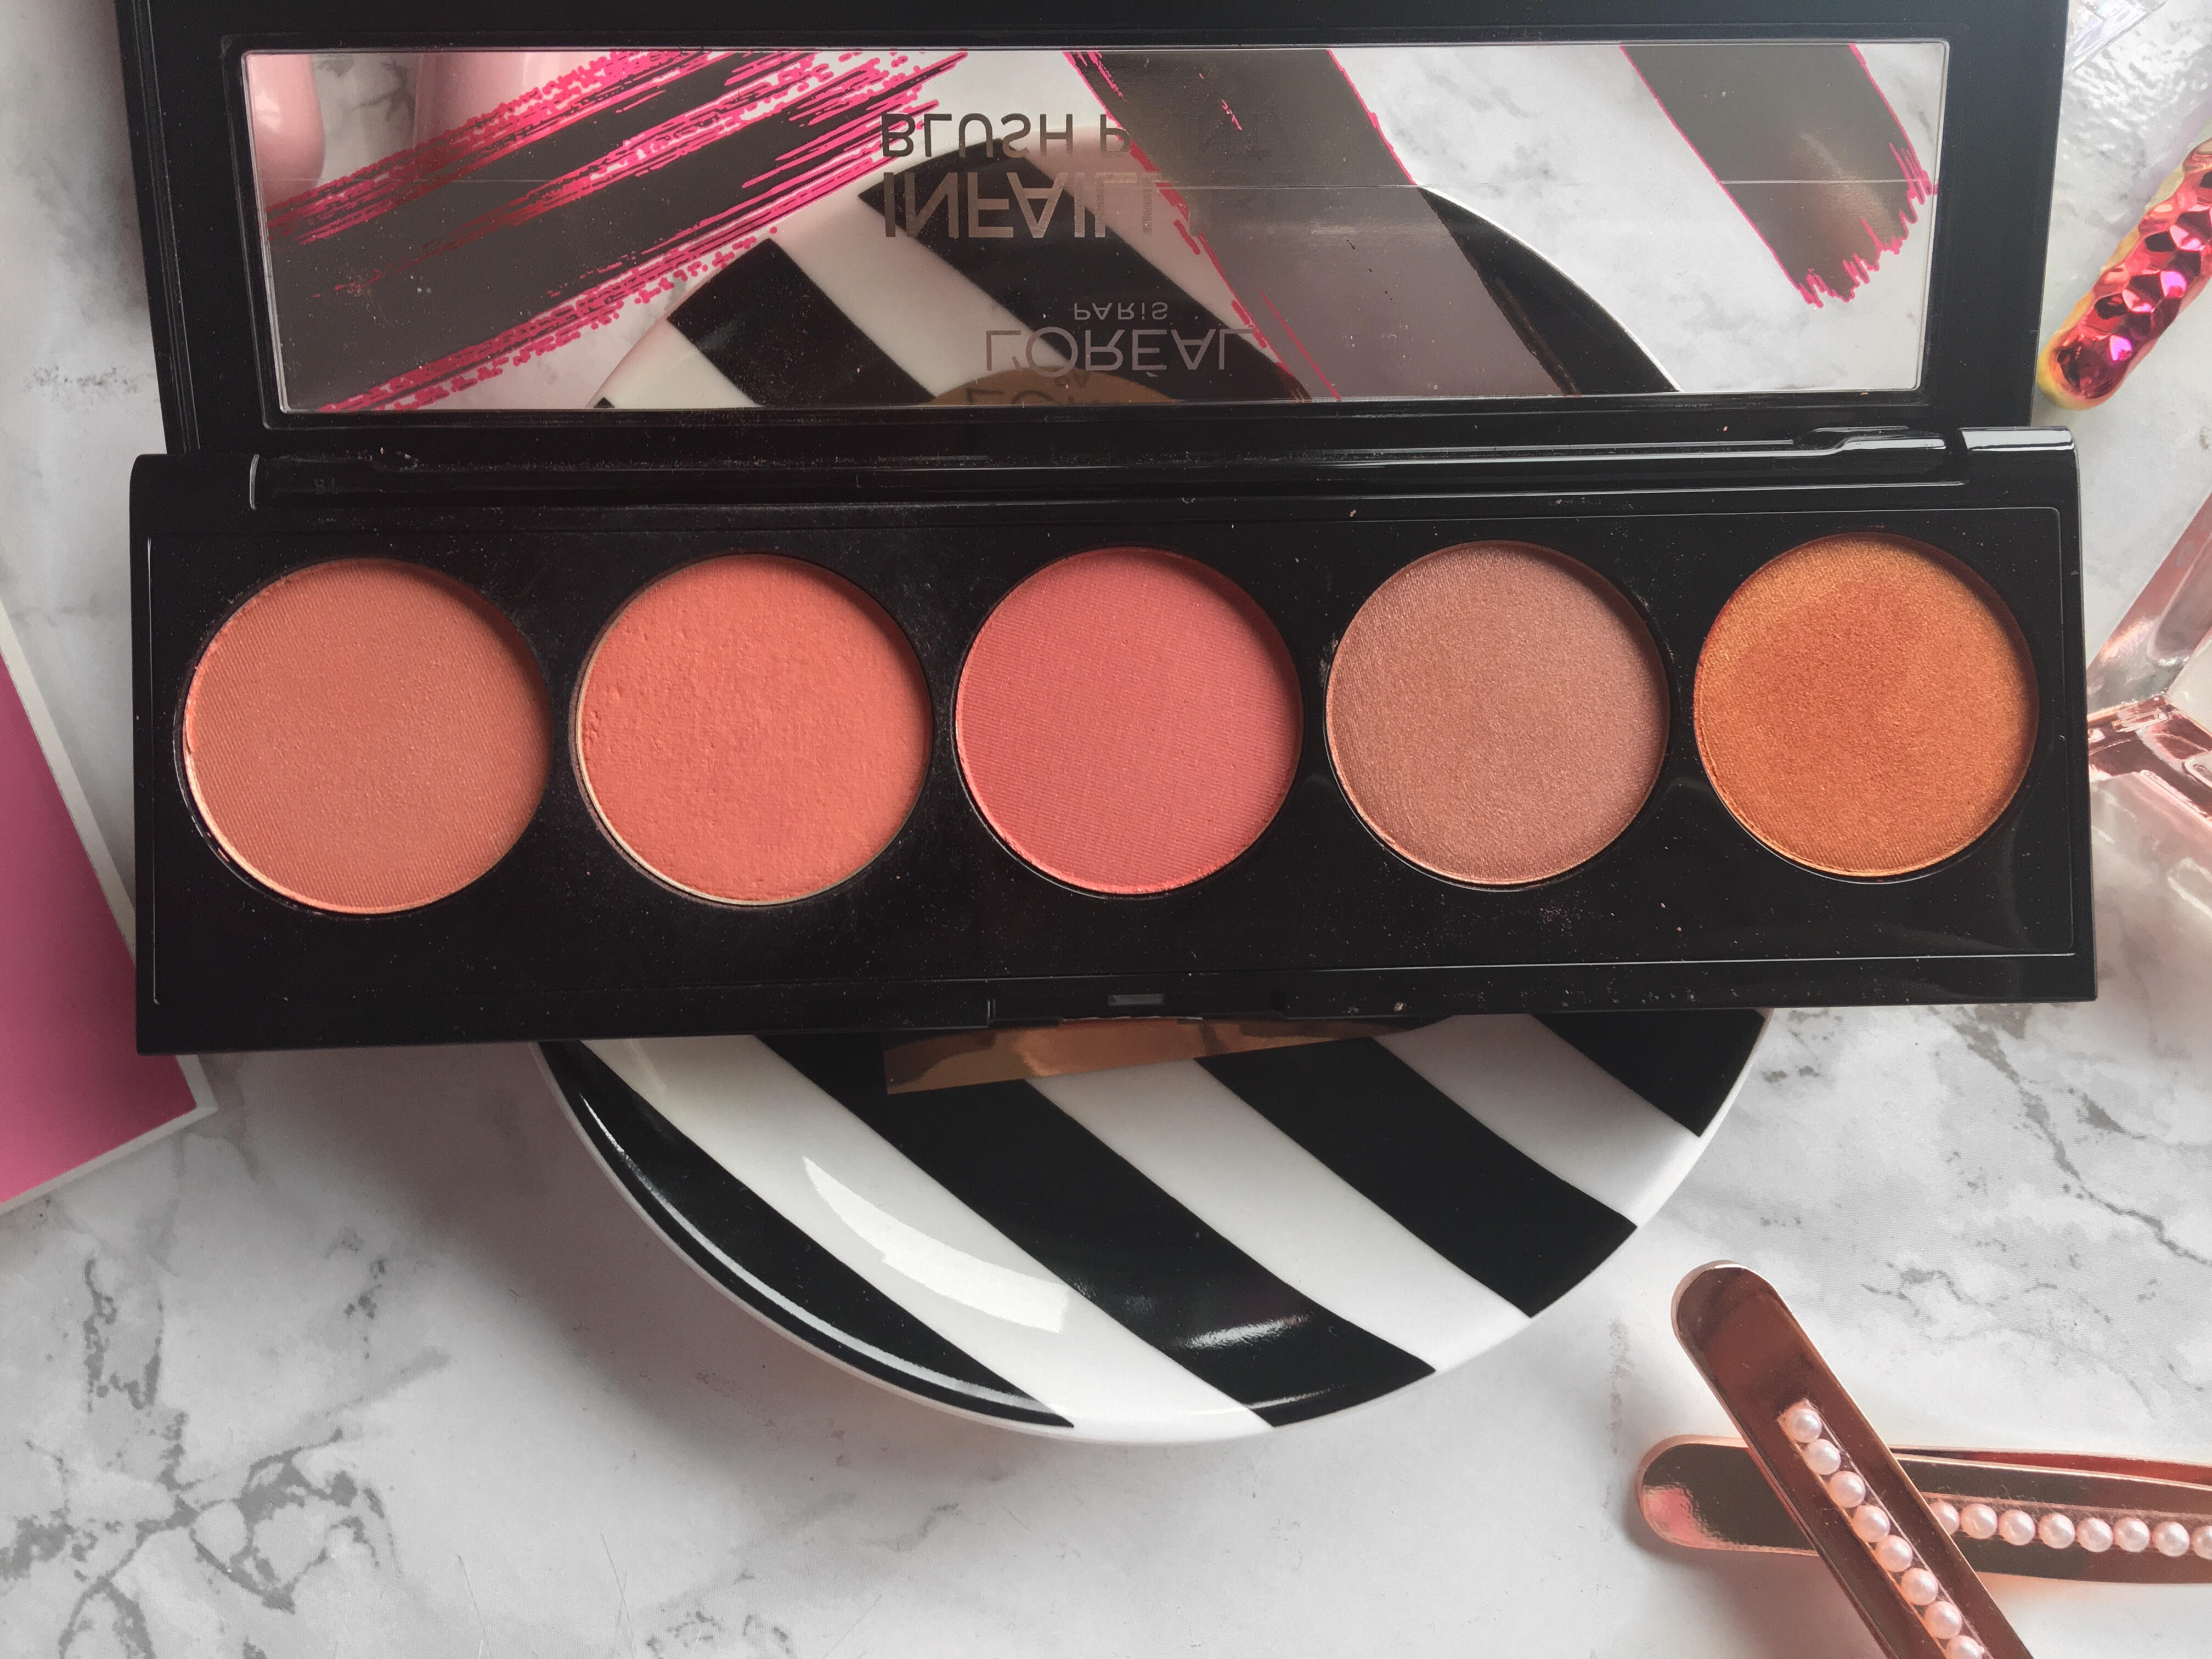 Infallible Paint Blush Palette by L'Oreal #19